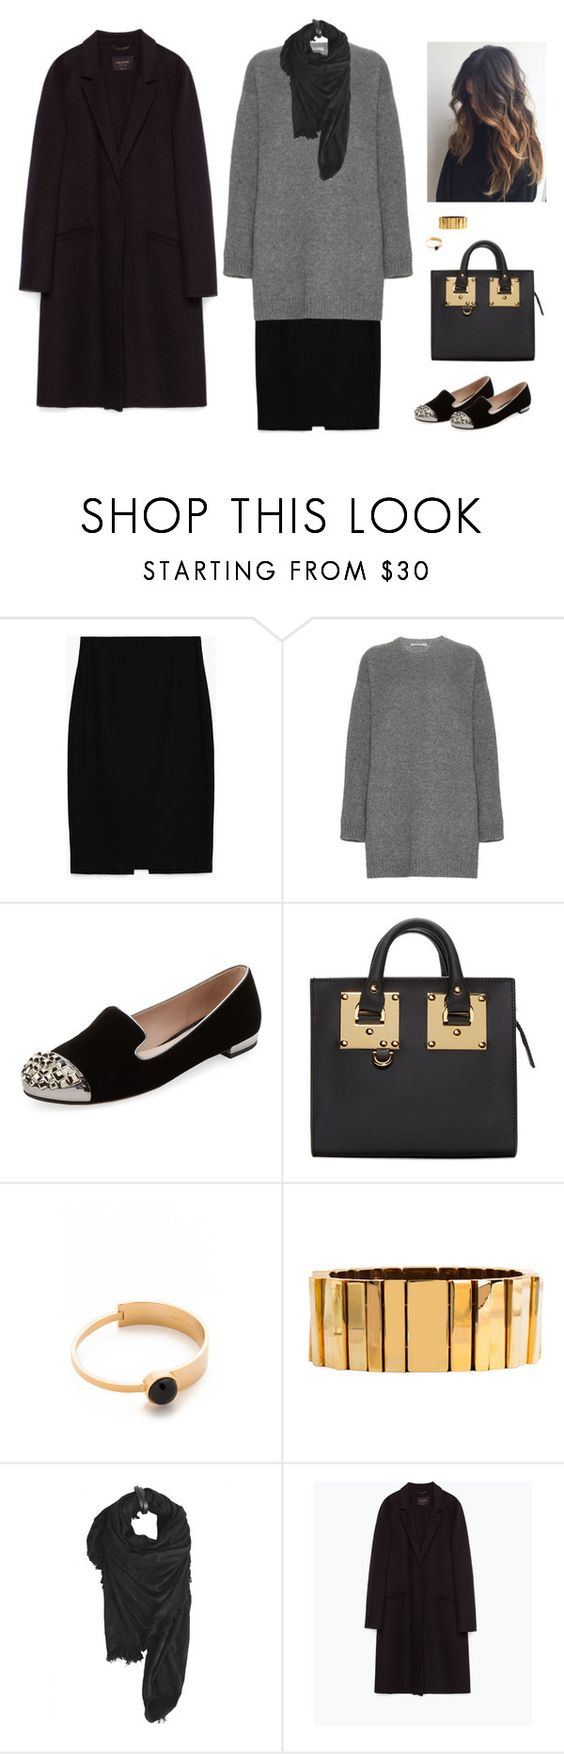 """""""Sans titre #6537"""" by youngx ❤ liked on Polyvore featuring Zara, Valentino, Miu Miu, Sophie Hulme, Marc by Marc Jacobs, Lele Sadoughi and Tissu Tiré"""